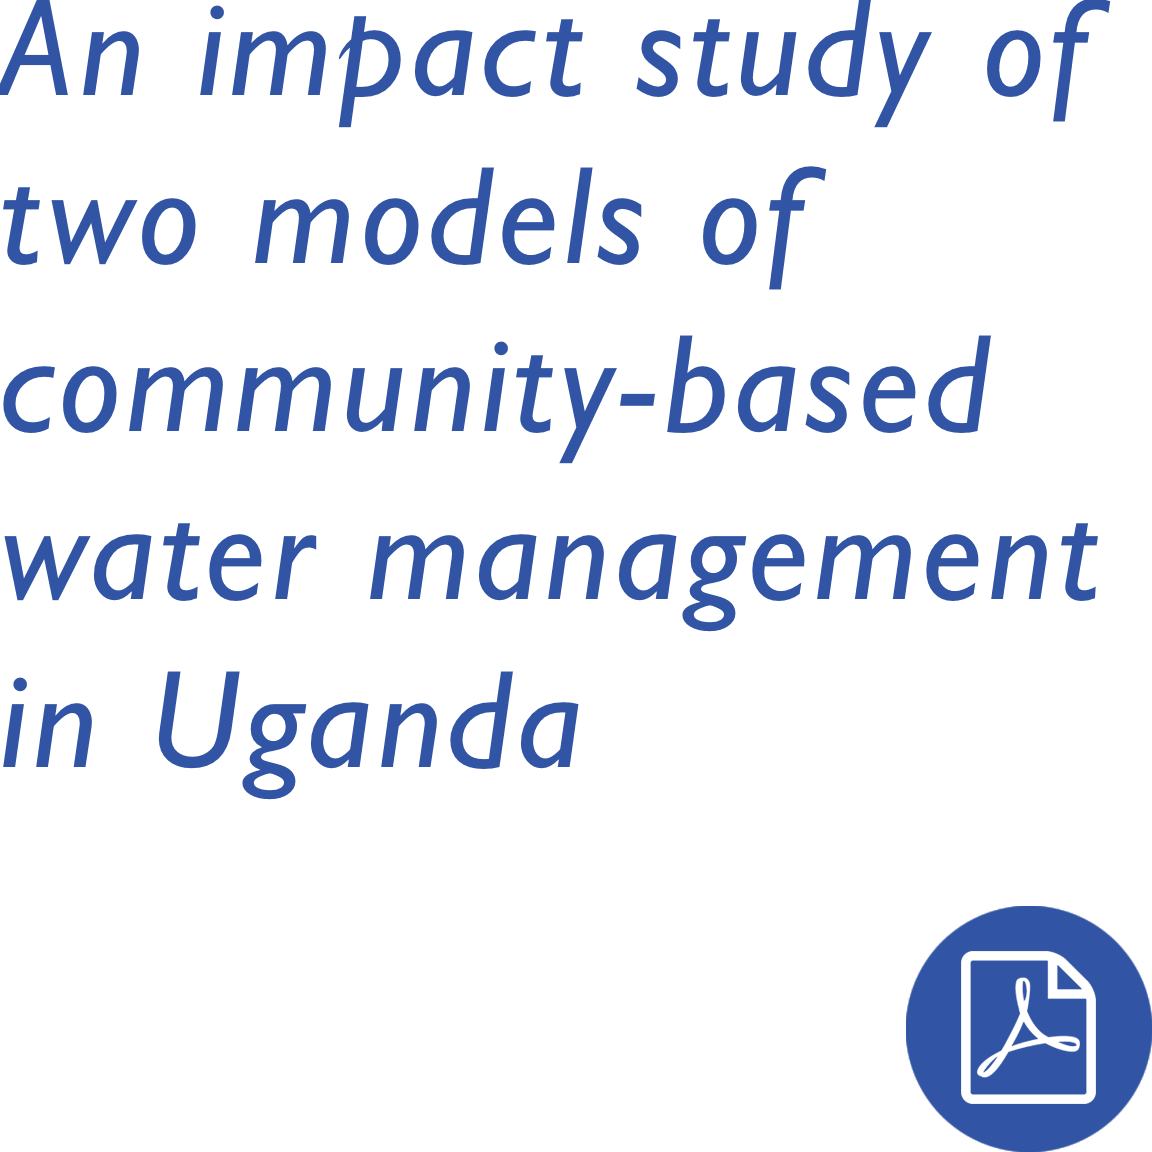 An impact study of two models of community-based water management in Uganda